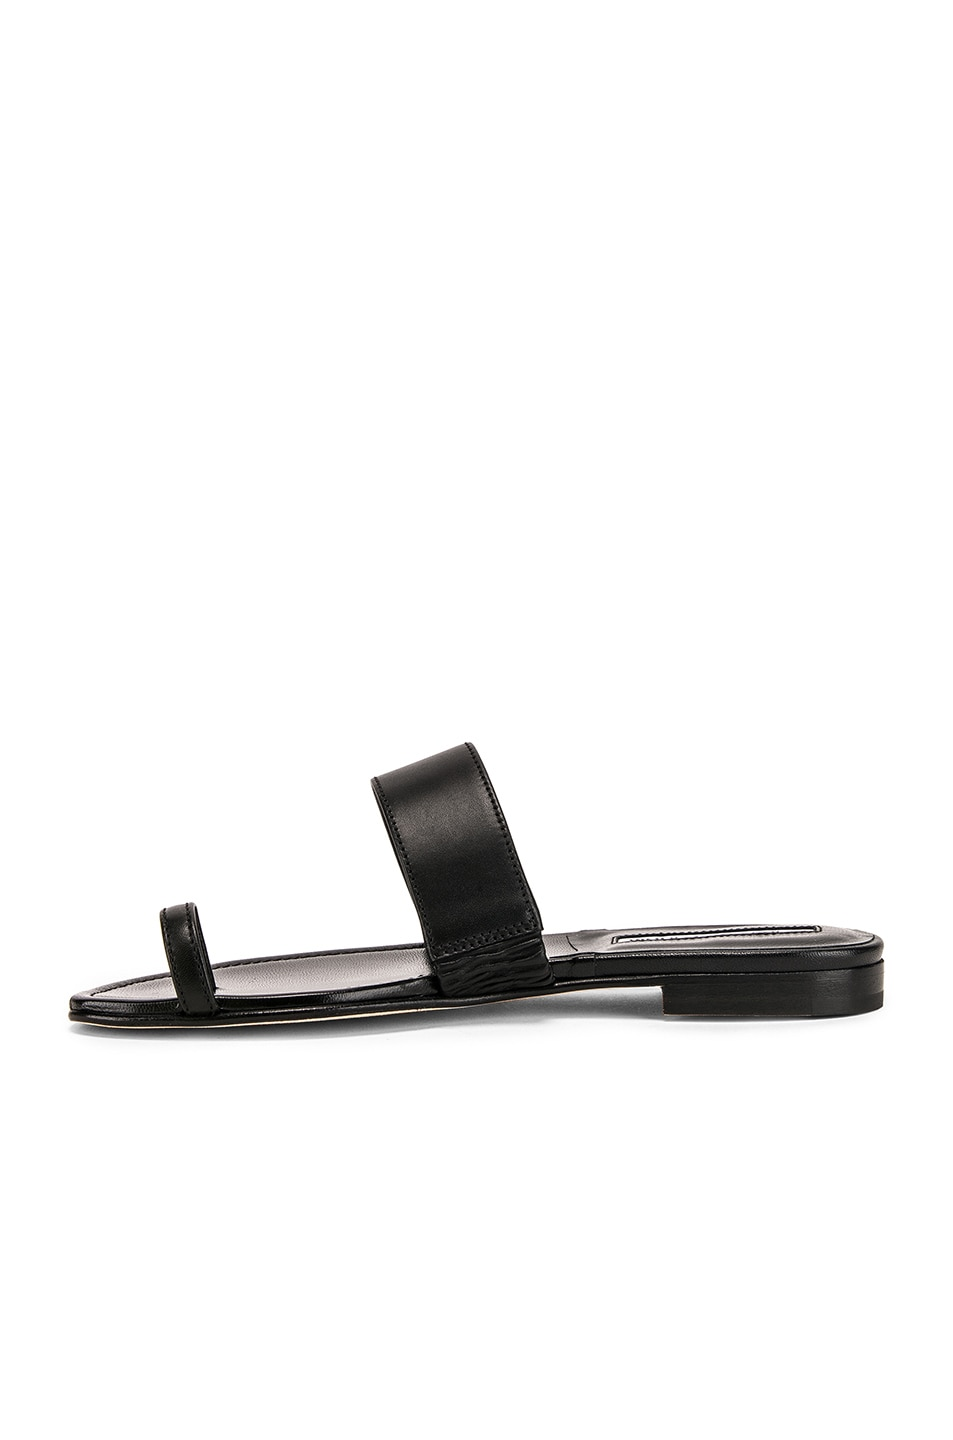 Image 5 of Manolo Blahnik Messen Sandal in Black Calf